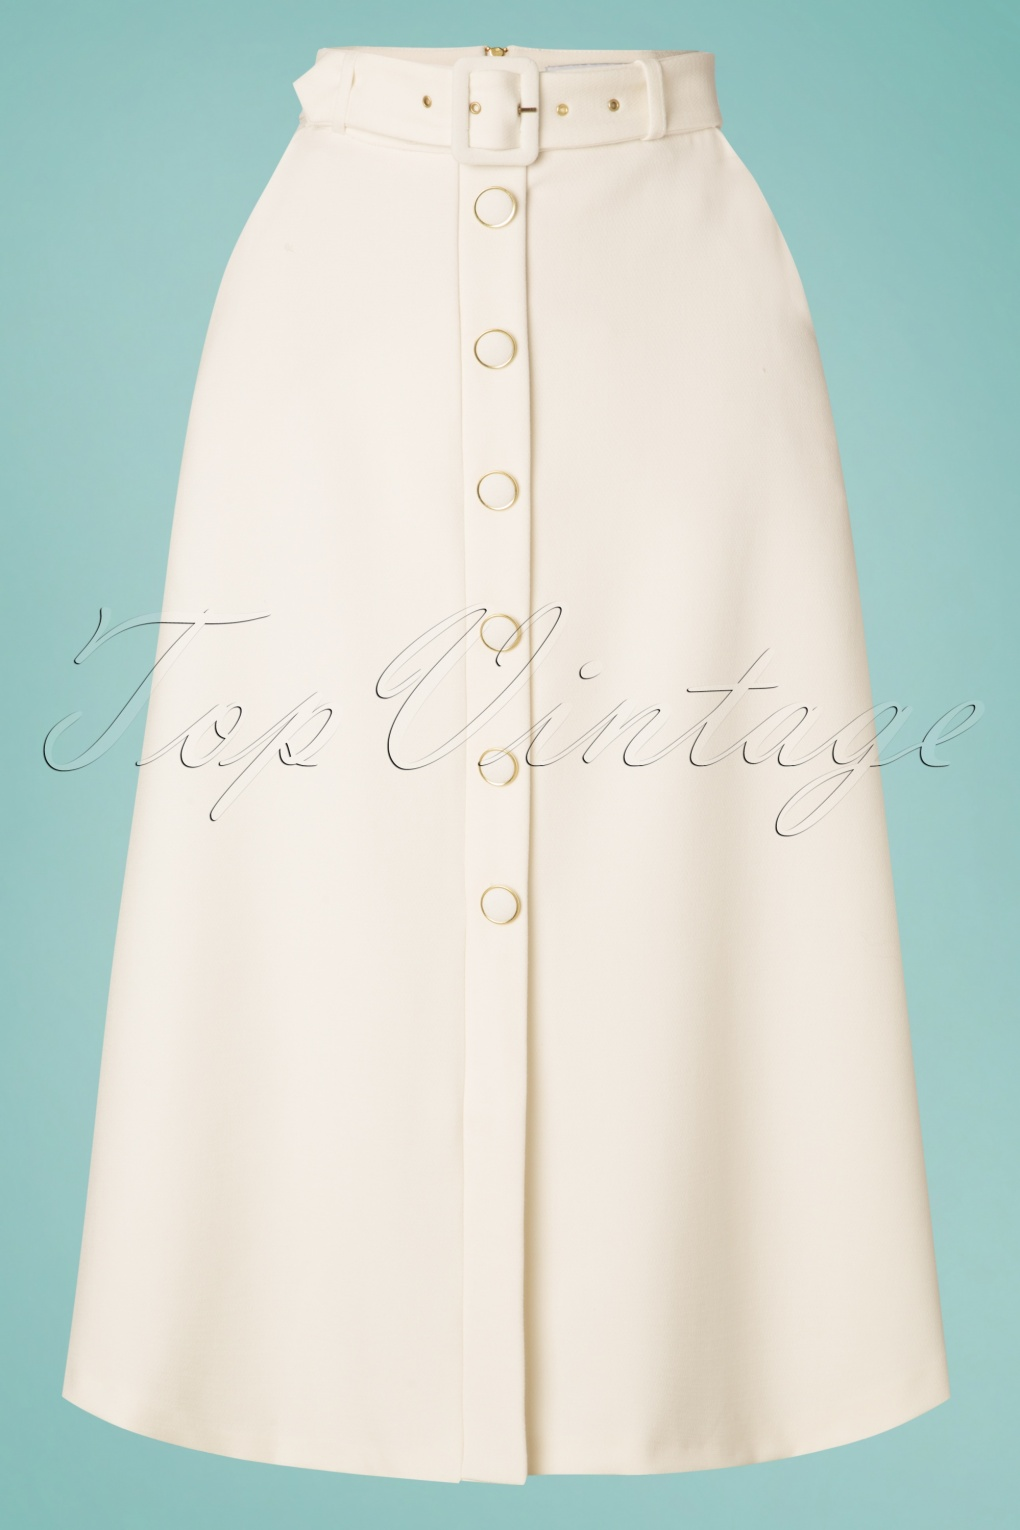 1960s Style Dresses, Clothing, Shoes UK 60s Senna A-Line Midi Skirt in Ivory £64.89 AT vintagedancer.com